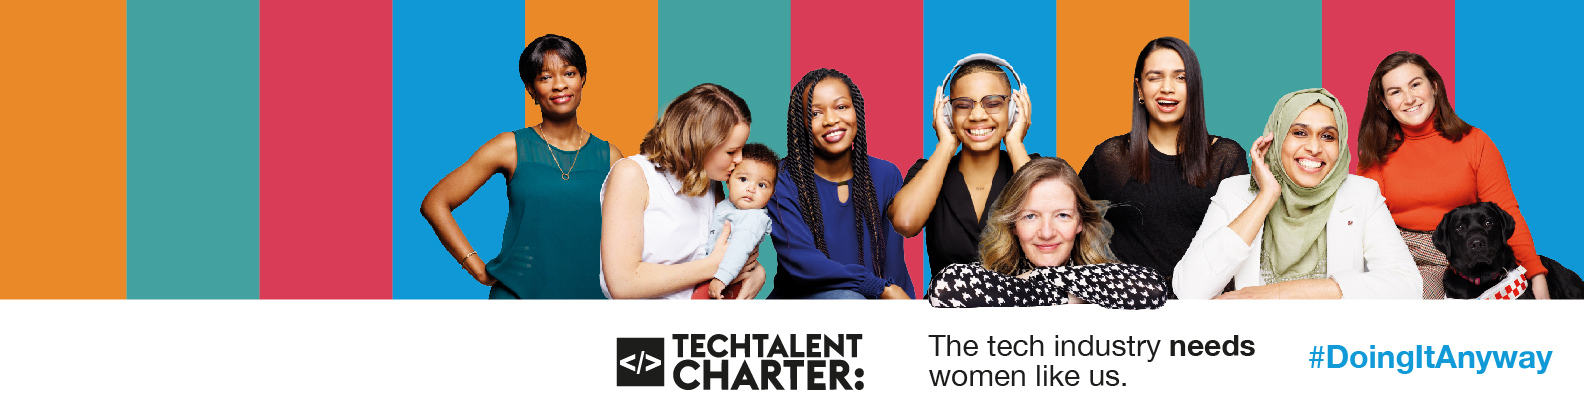 Eight women smiling featuring the Tech Talent Charter logo